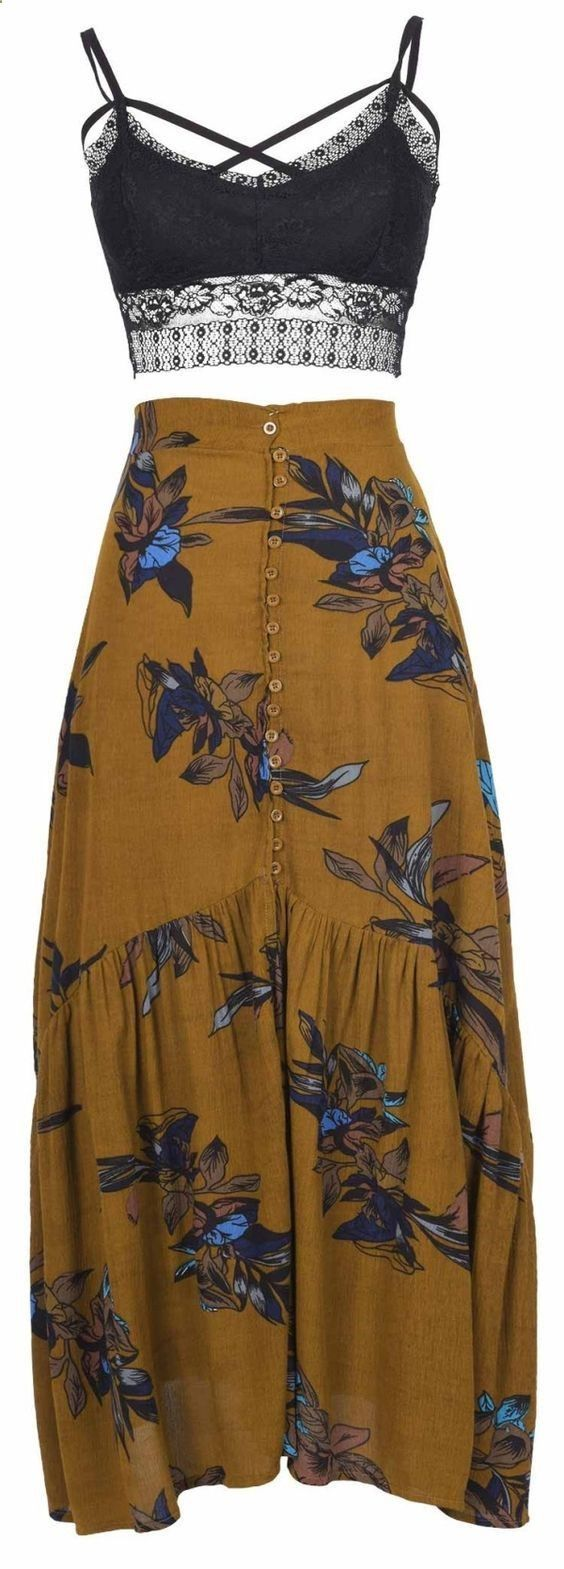 Women's Skirts – #womensskirts – Button-down Floral Maxi Womens Fashion High Wai…